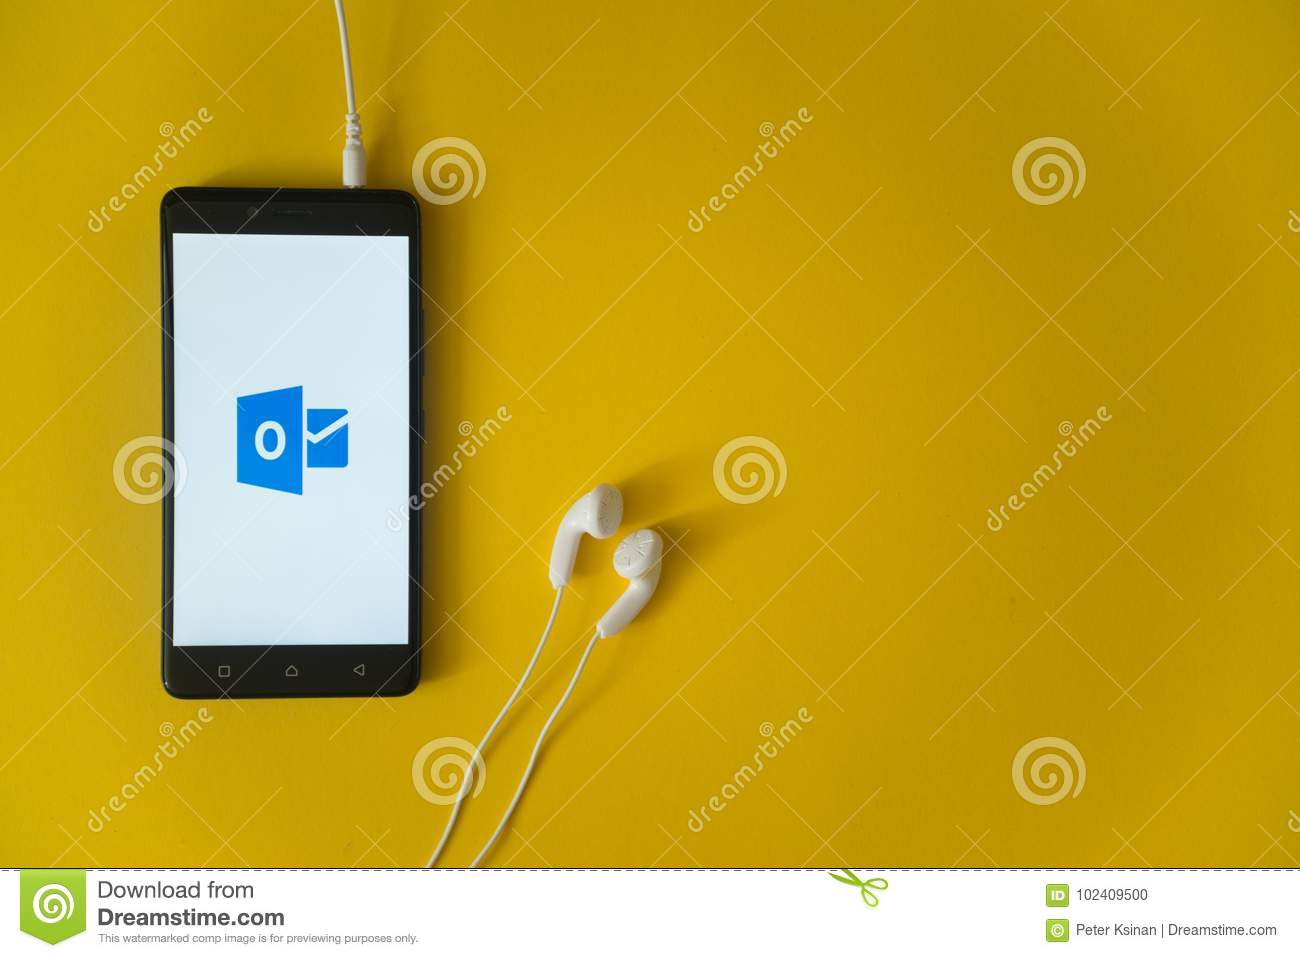 Microsoft Office Outlook Logo On Smartphone Screen On Yellow